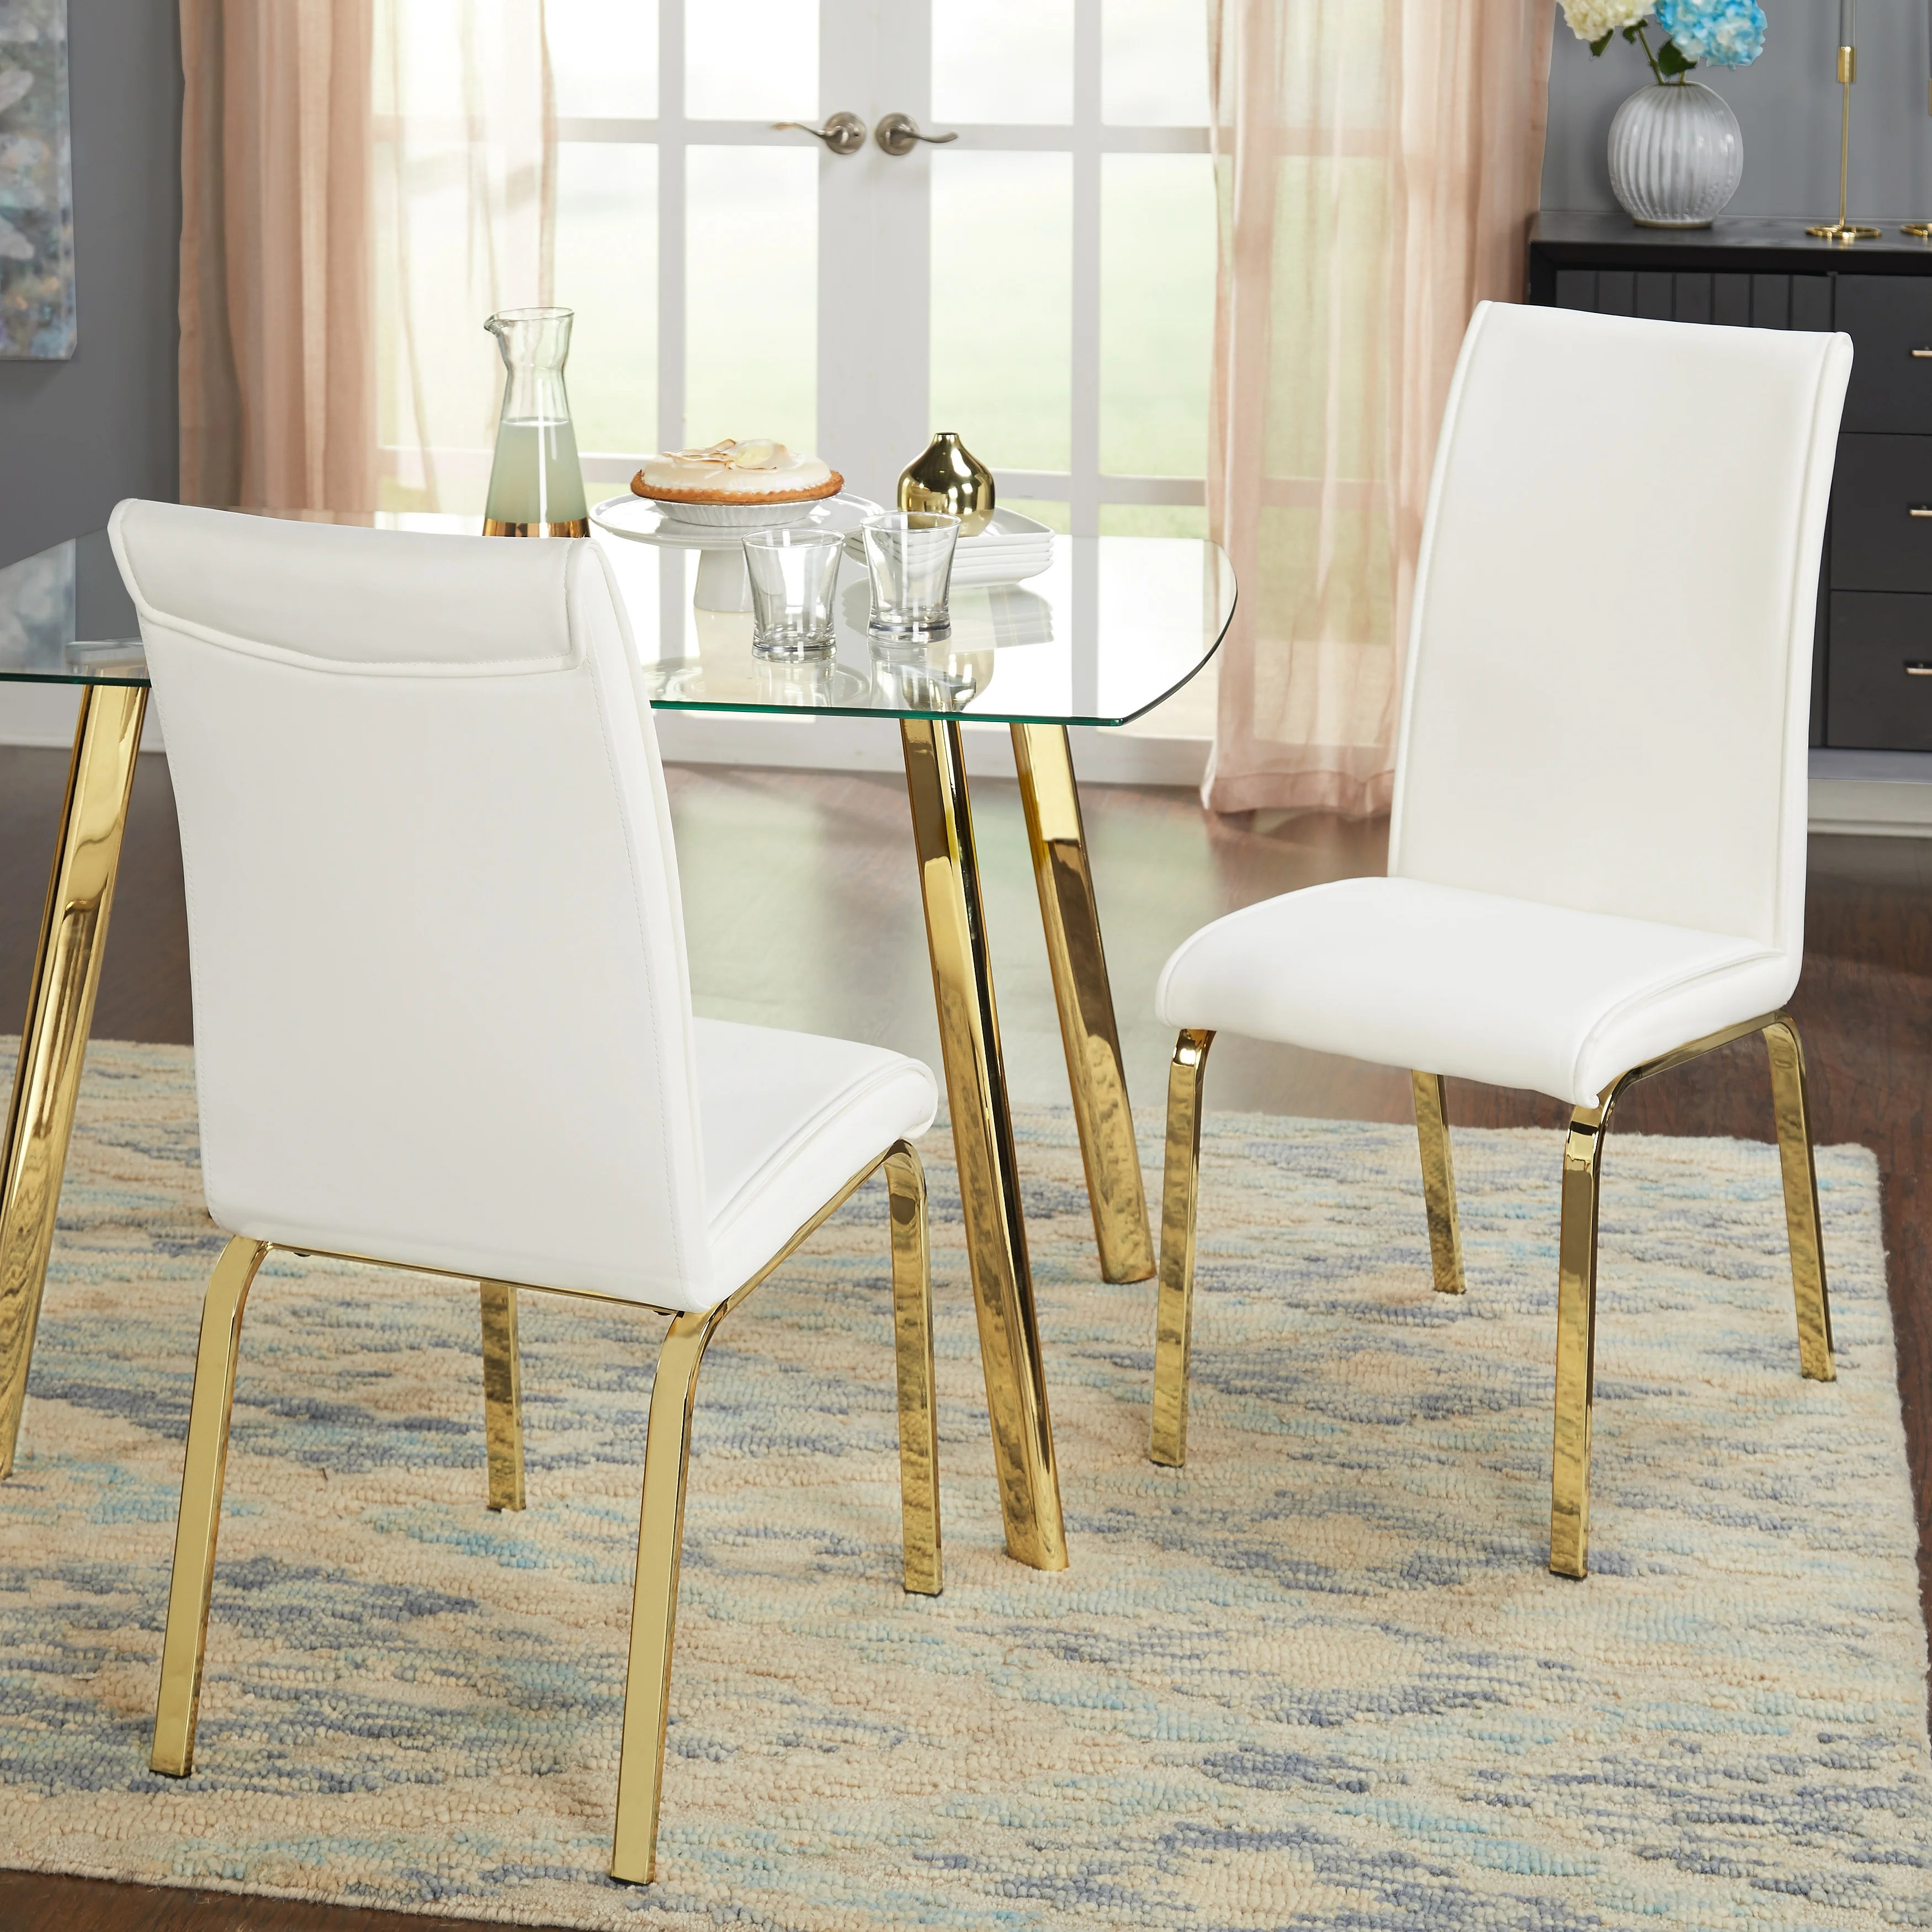 parsons chairs professional office shop simple uptown set of two on sale free